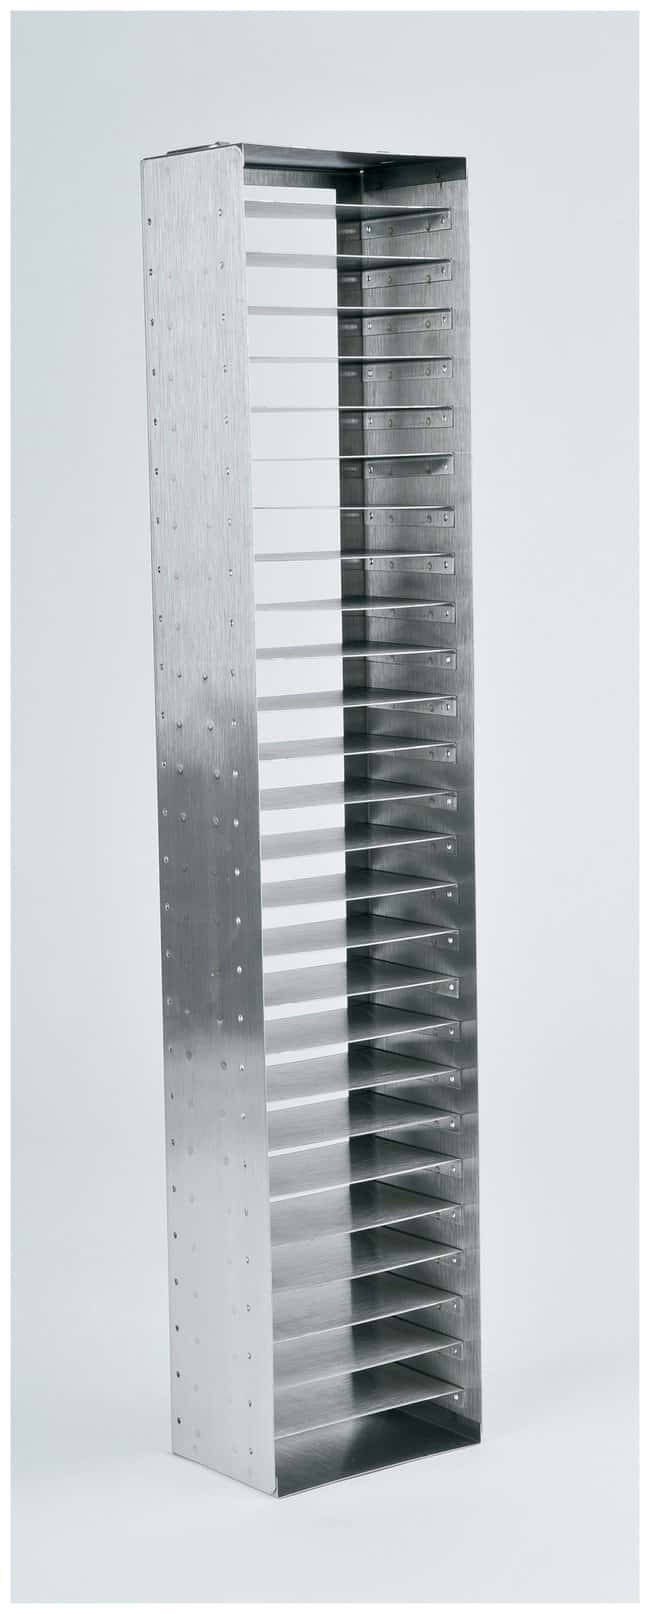 Thermo Scientific Chest Freezer Racks :Racks, Boxes, Labeling and Tape:Racks